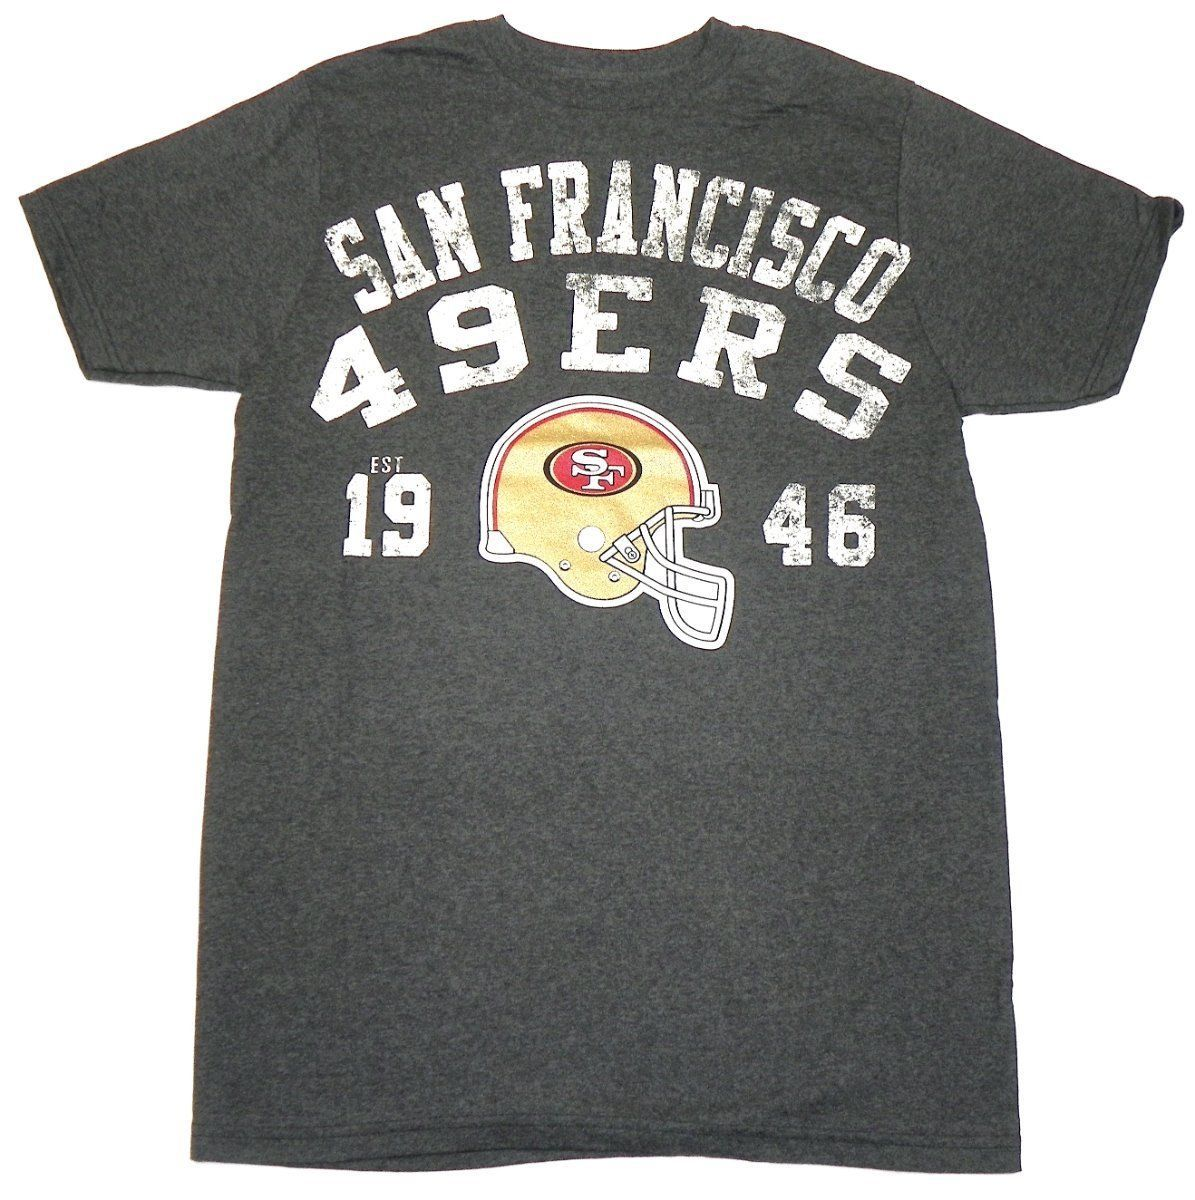 San Francisco 49ers Shirt Men's NFL Vintage Est. Year Tee Football G-III T-Shirt